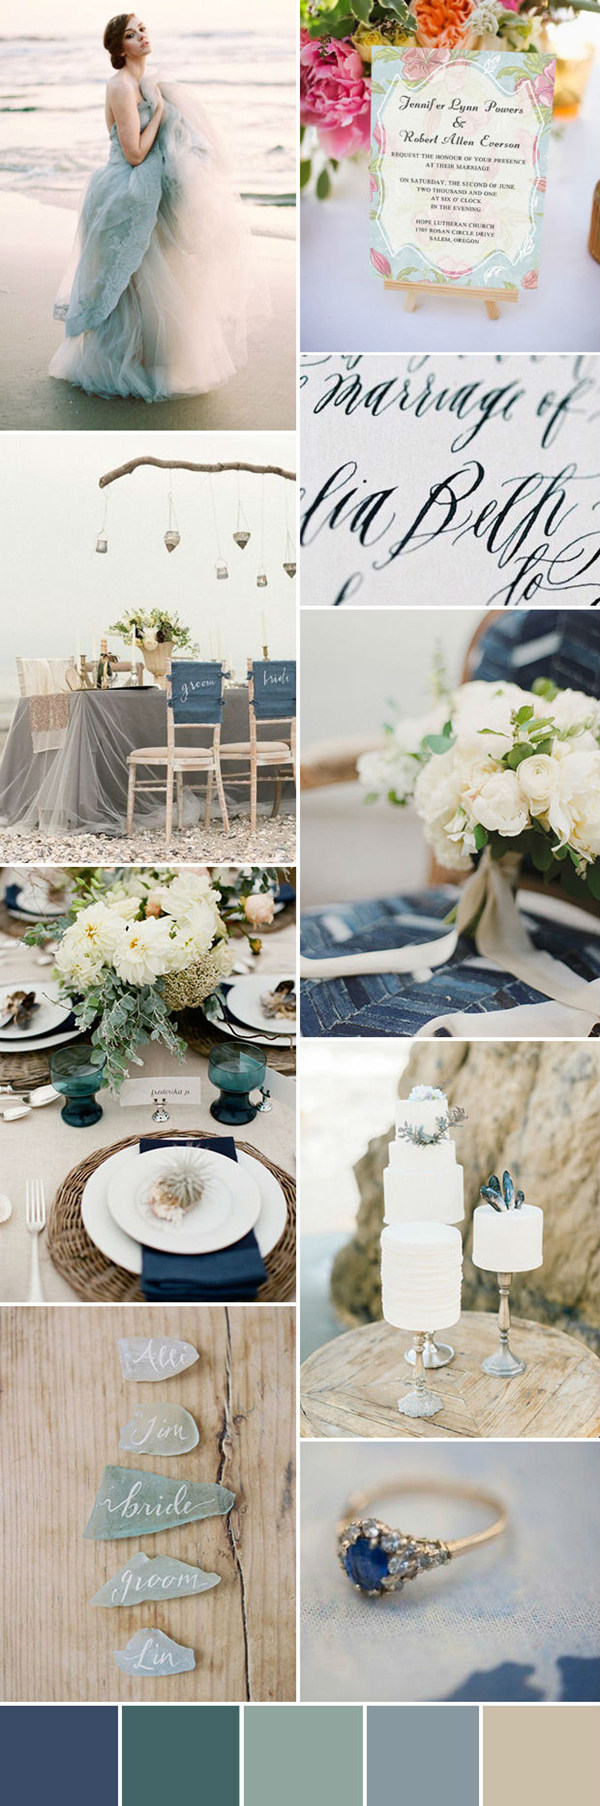 beach wedding ideas with sea inspired wedding color